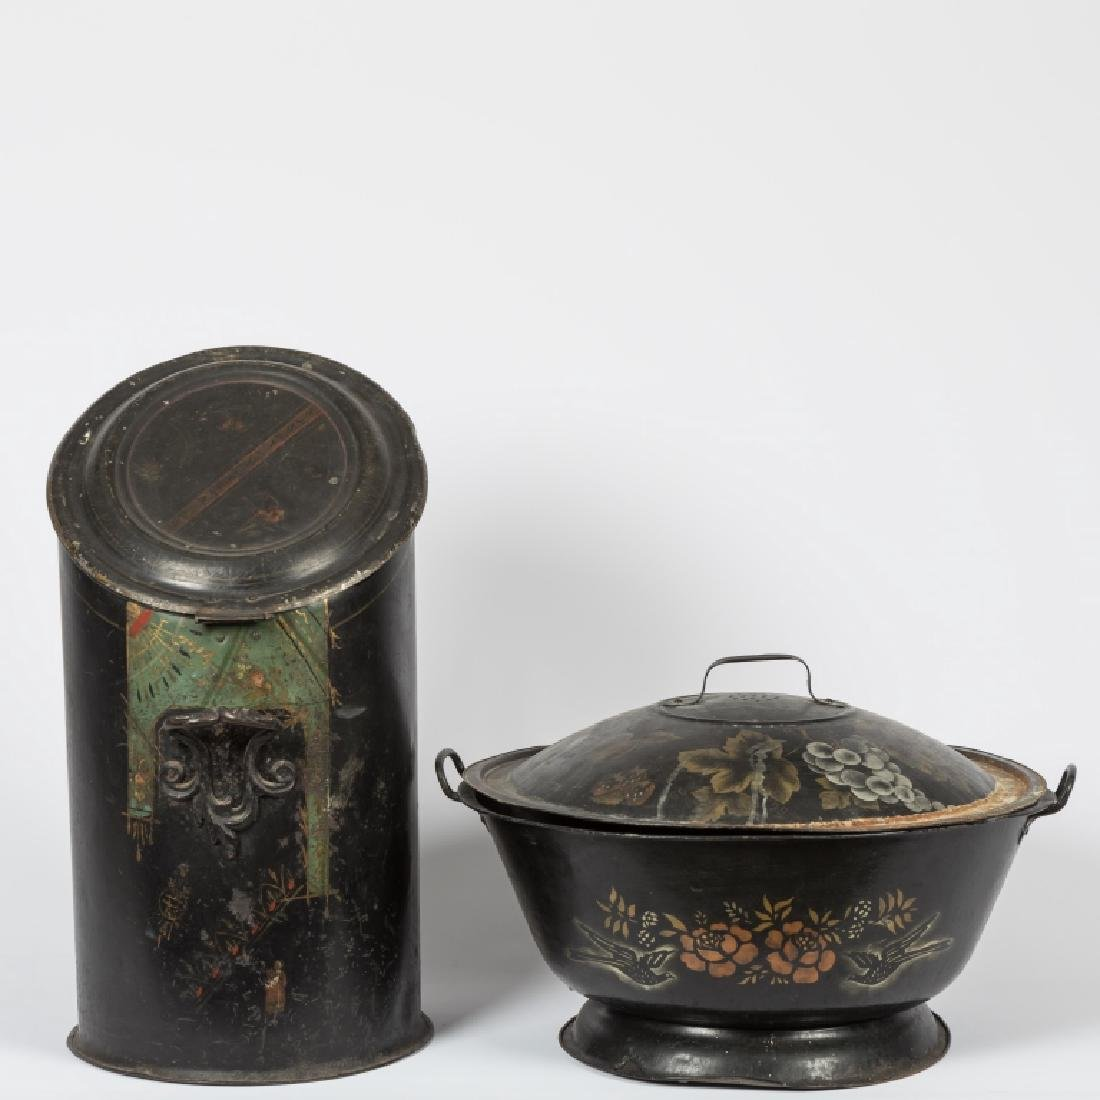 Tole Coal Scuttle and Tole Covered Bowl